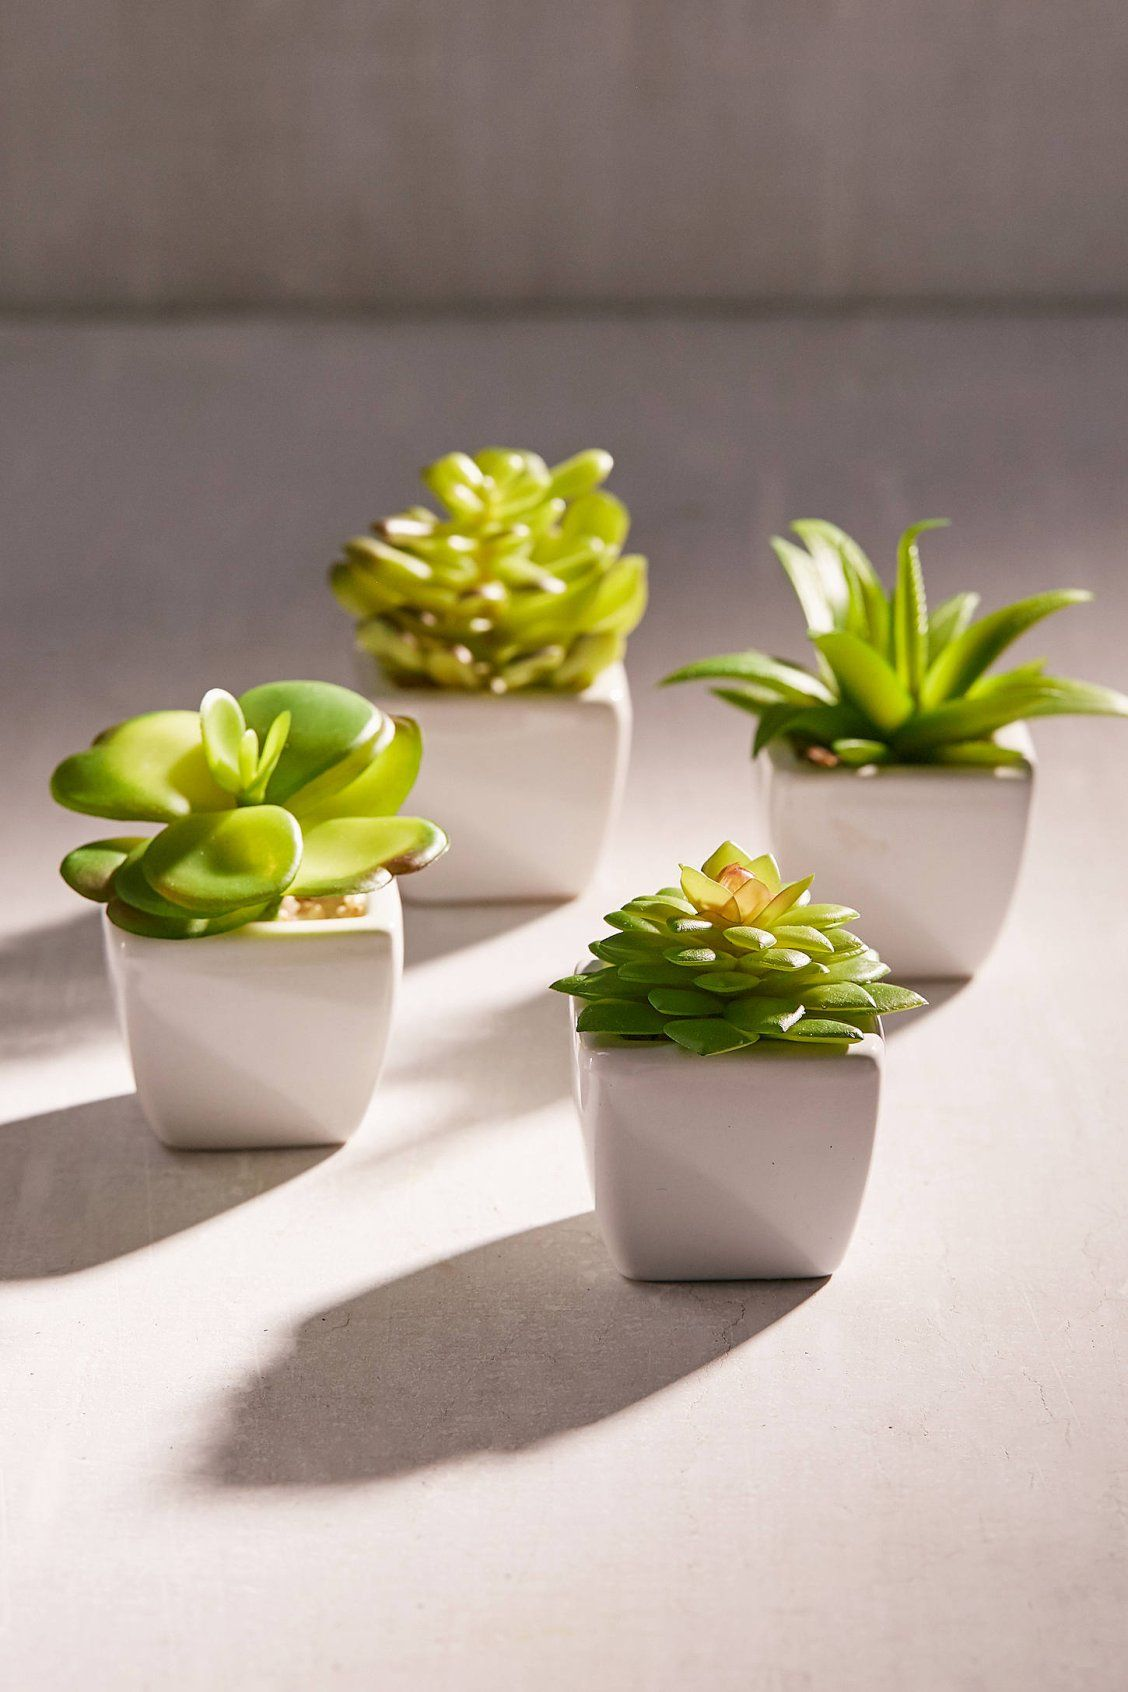 Potted Faux Echeveria Succulent Plant Fake Plants Decor Small Bathroom Decor Bathroom Plants